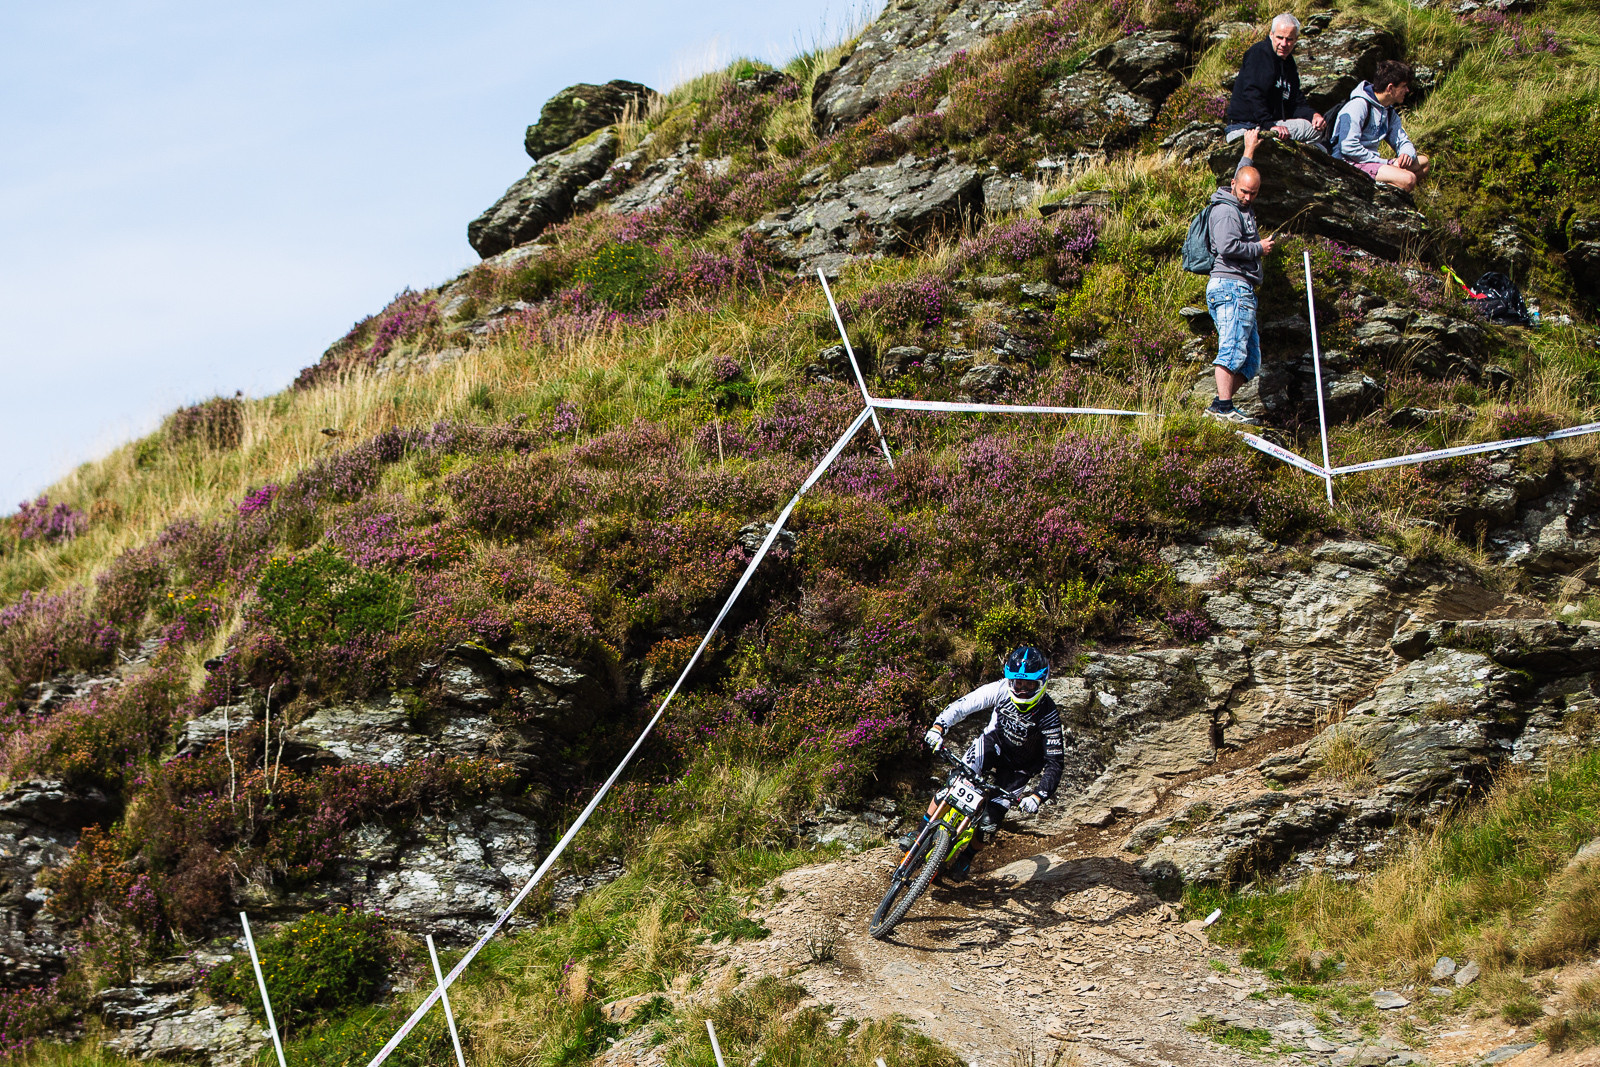 NEVER CLIP IN - 2015 British Downhill Series Finals, Antur Stiniog - 2015 British Downhill Series Finals - Mountain Biking Pictures - Vital MTB